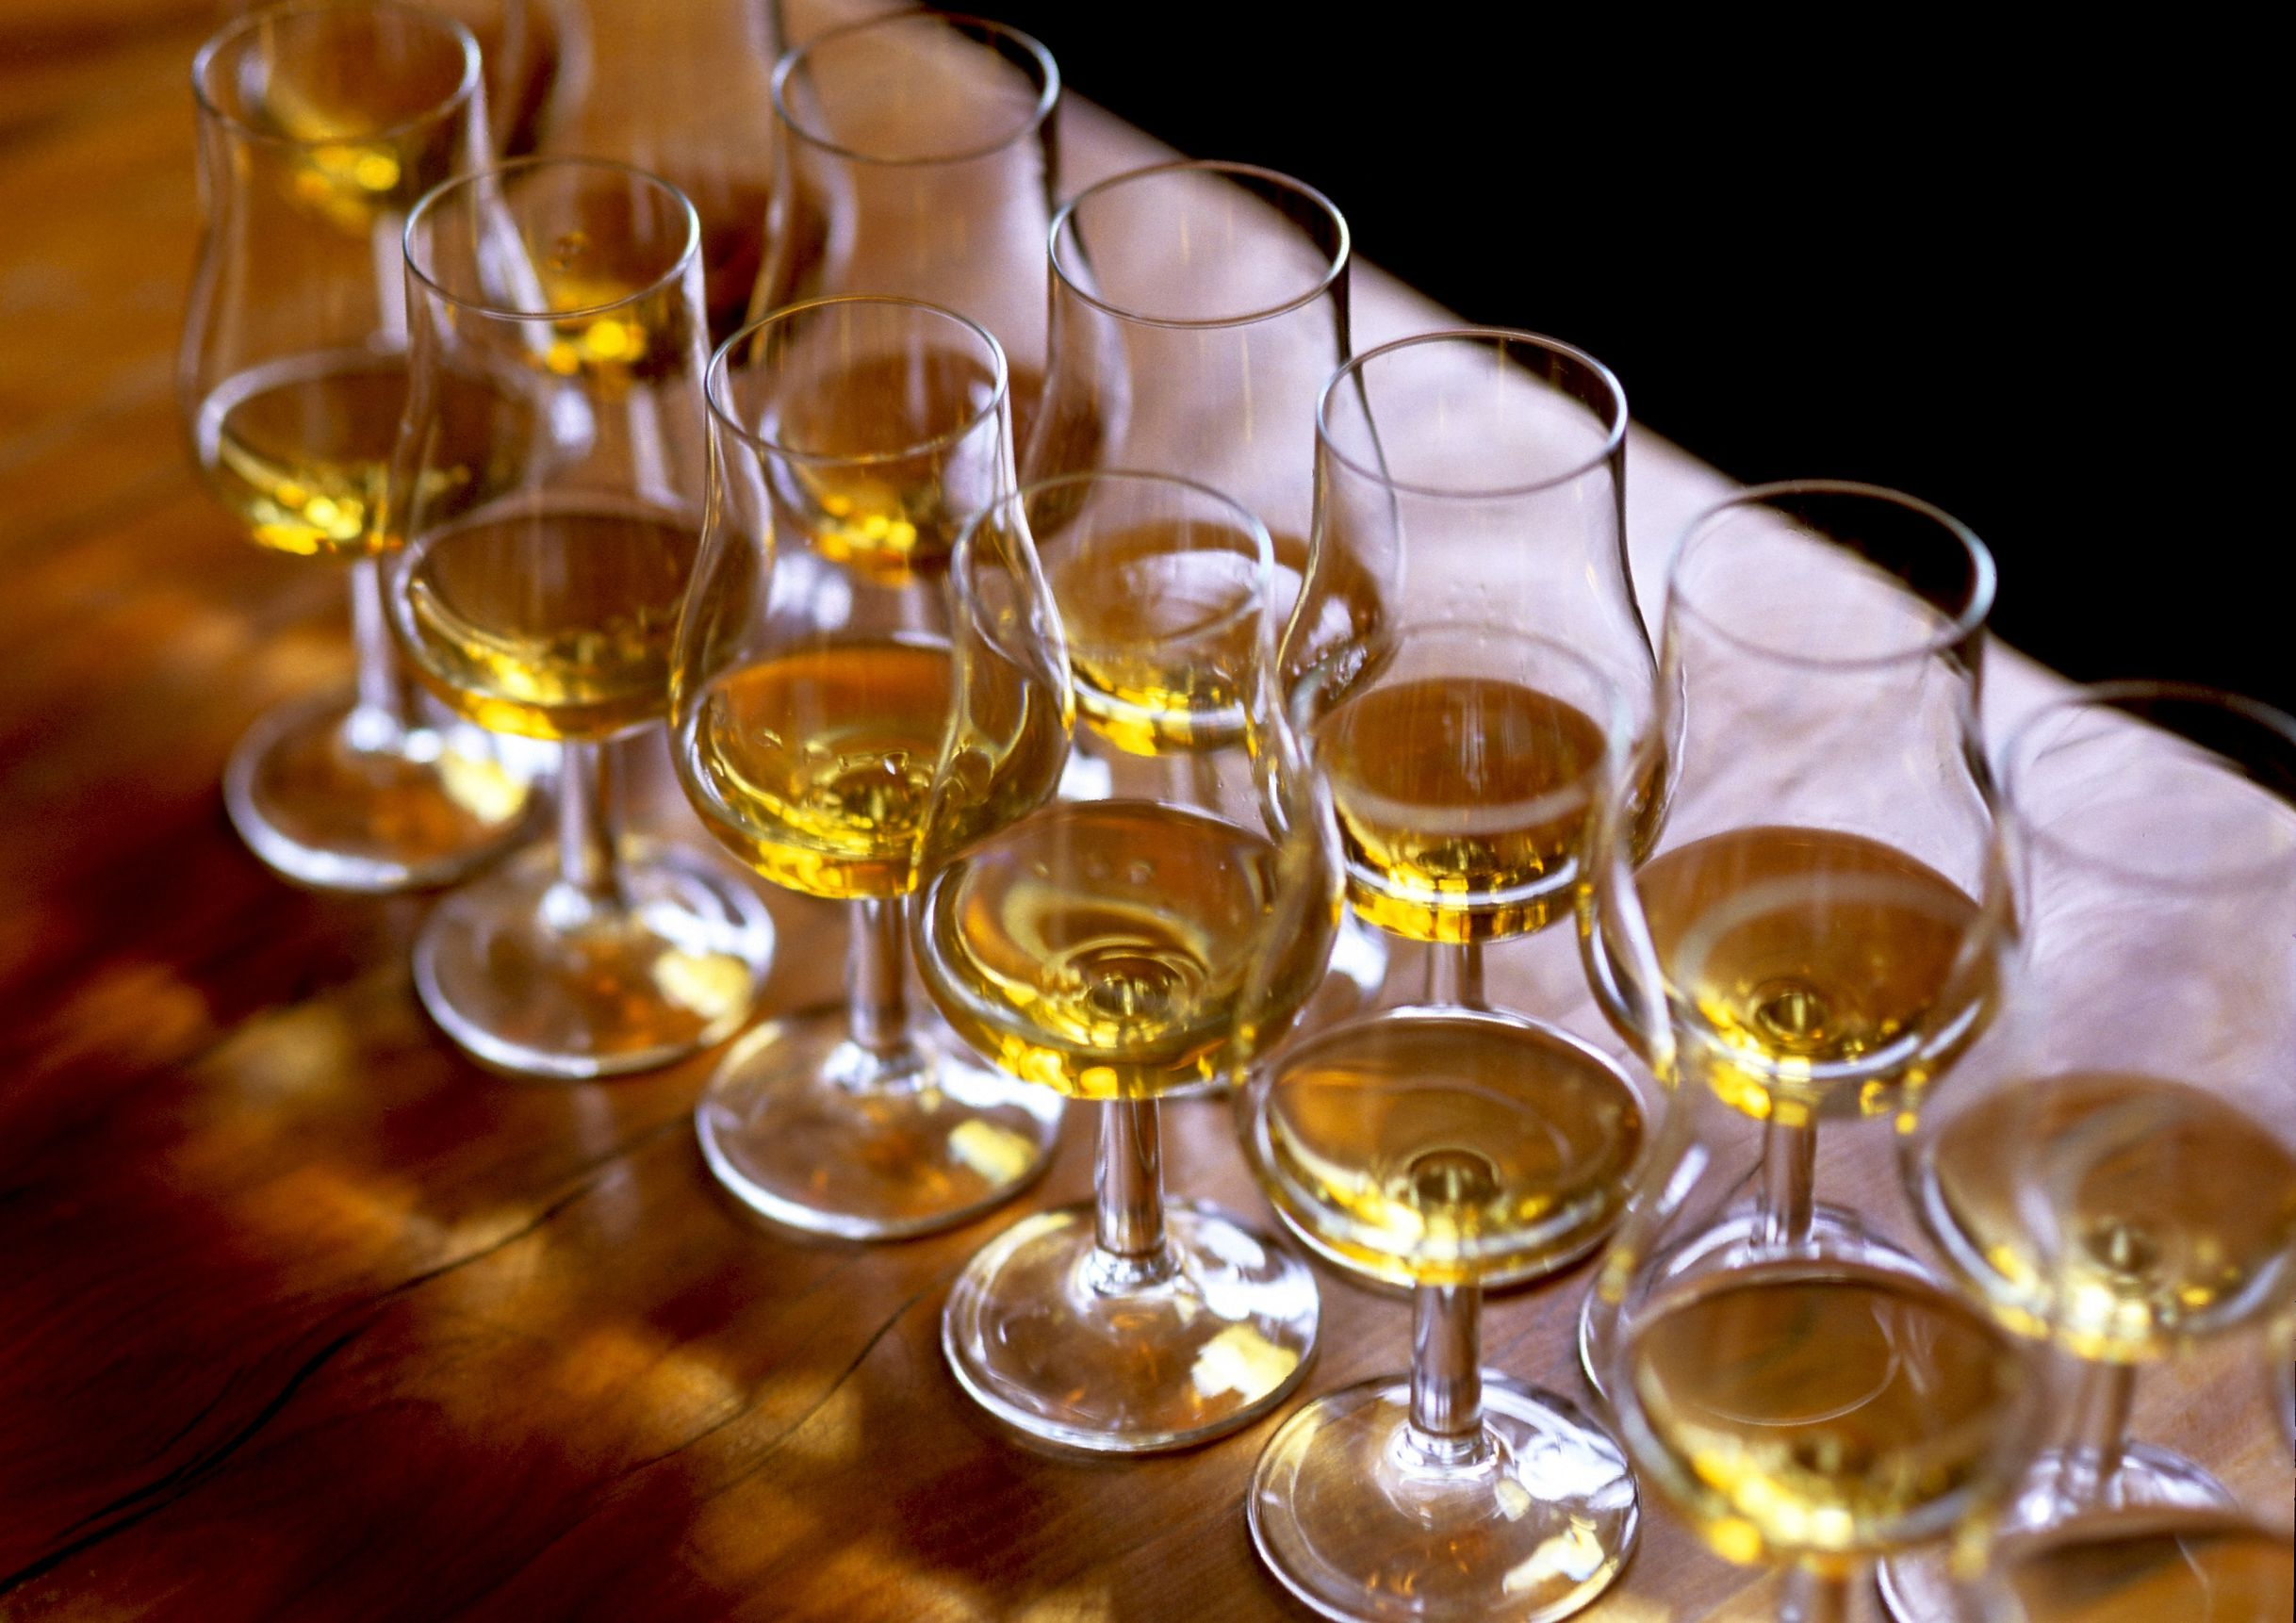 Scotch glasses lined up for Scotch tasting